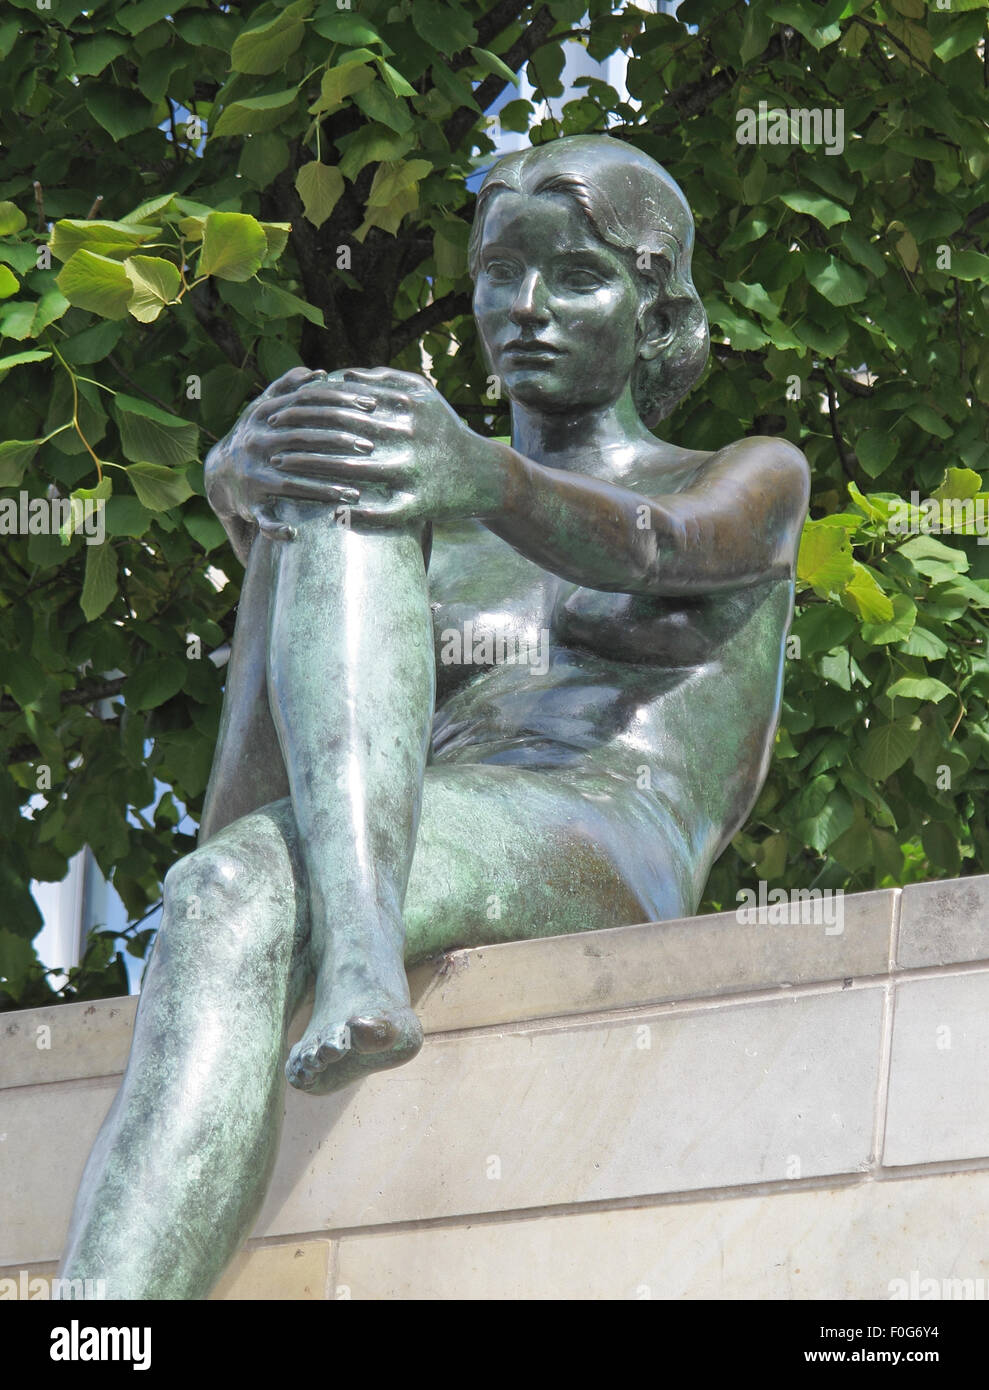 Three girls and a boy by Wilfried Fitzenreiter - Statue by the Spree River, Moabit, Berlin, Germany, reclining - Stock Image